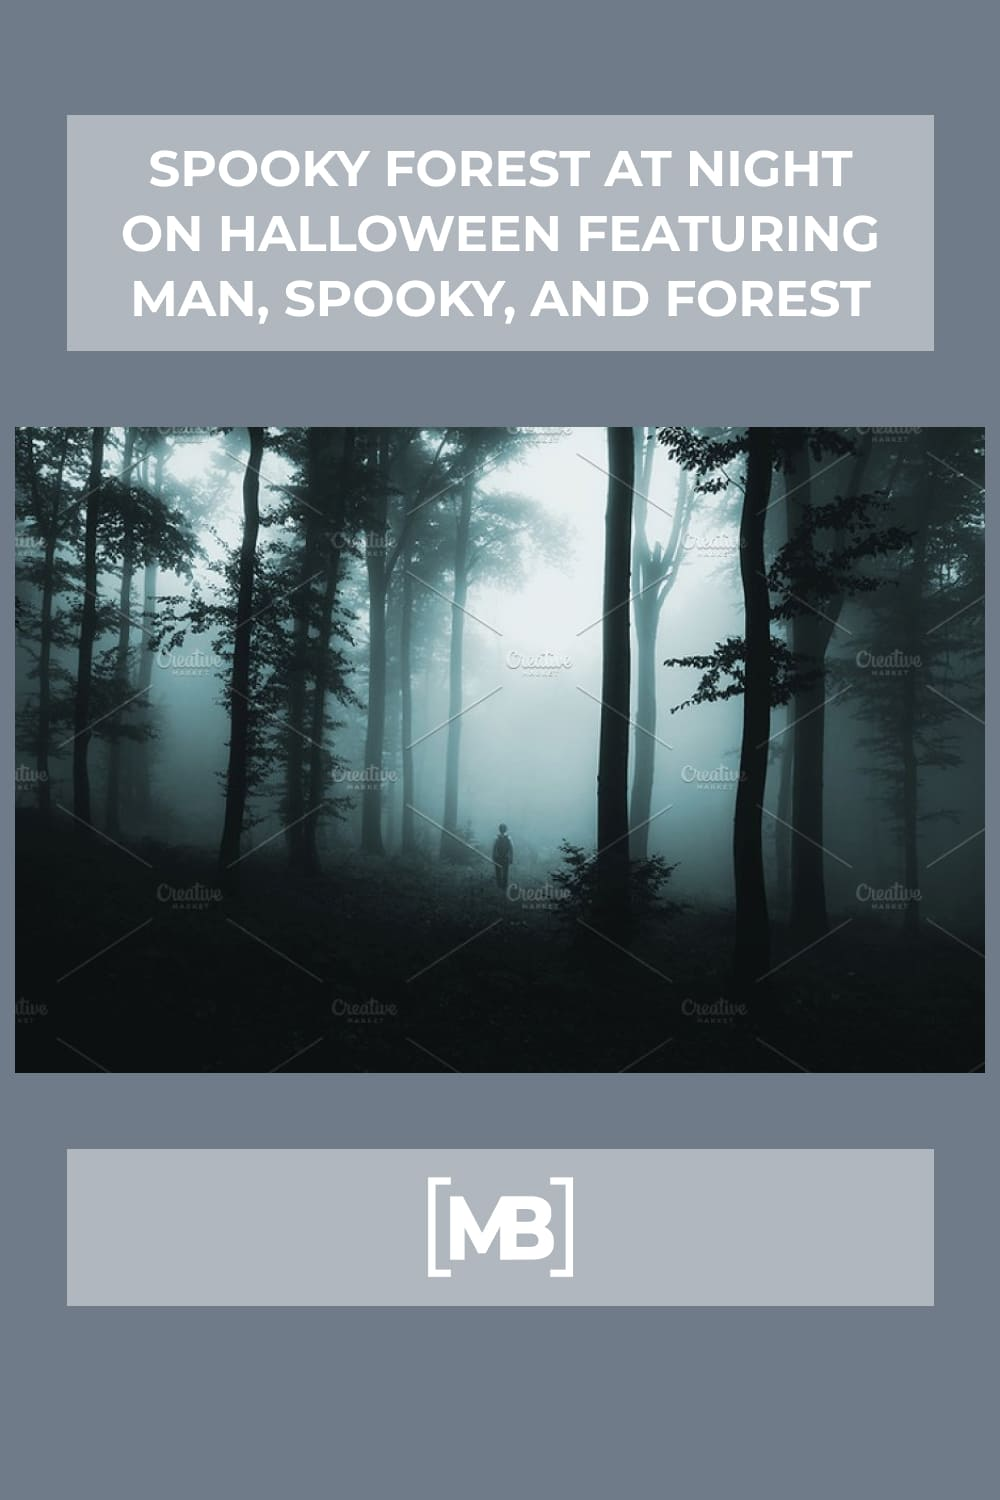 13 Spooky forest at night on halloween featuring man spooky and forest